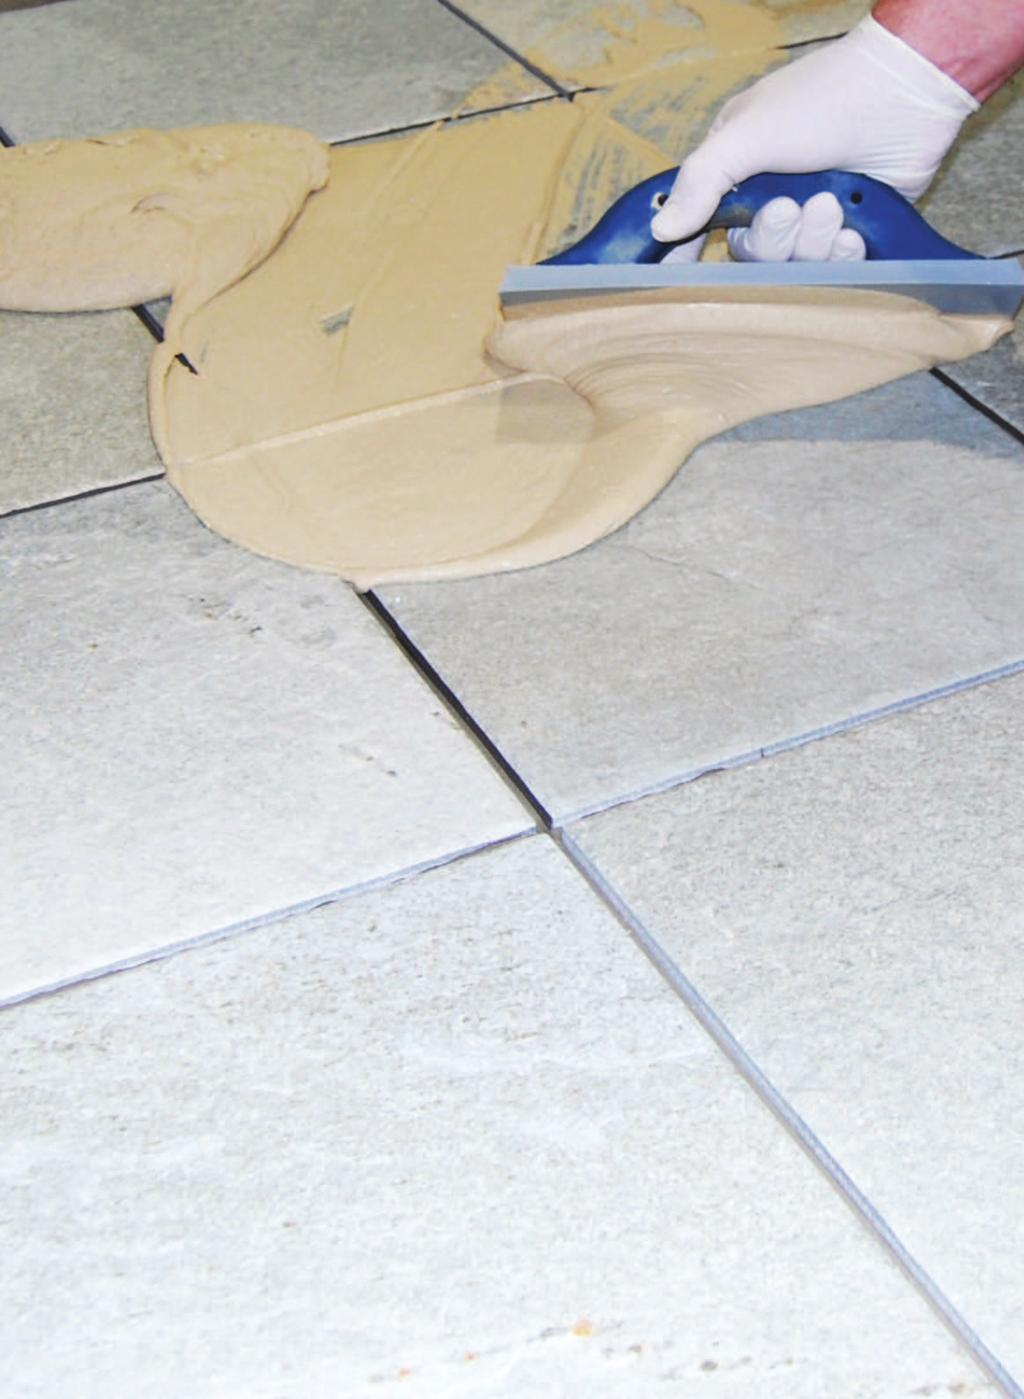 colors are approximate. Please refer to ARDEX Grout Kits for more accurate color comparisons.